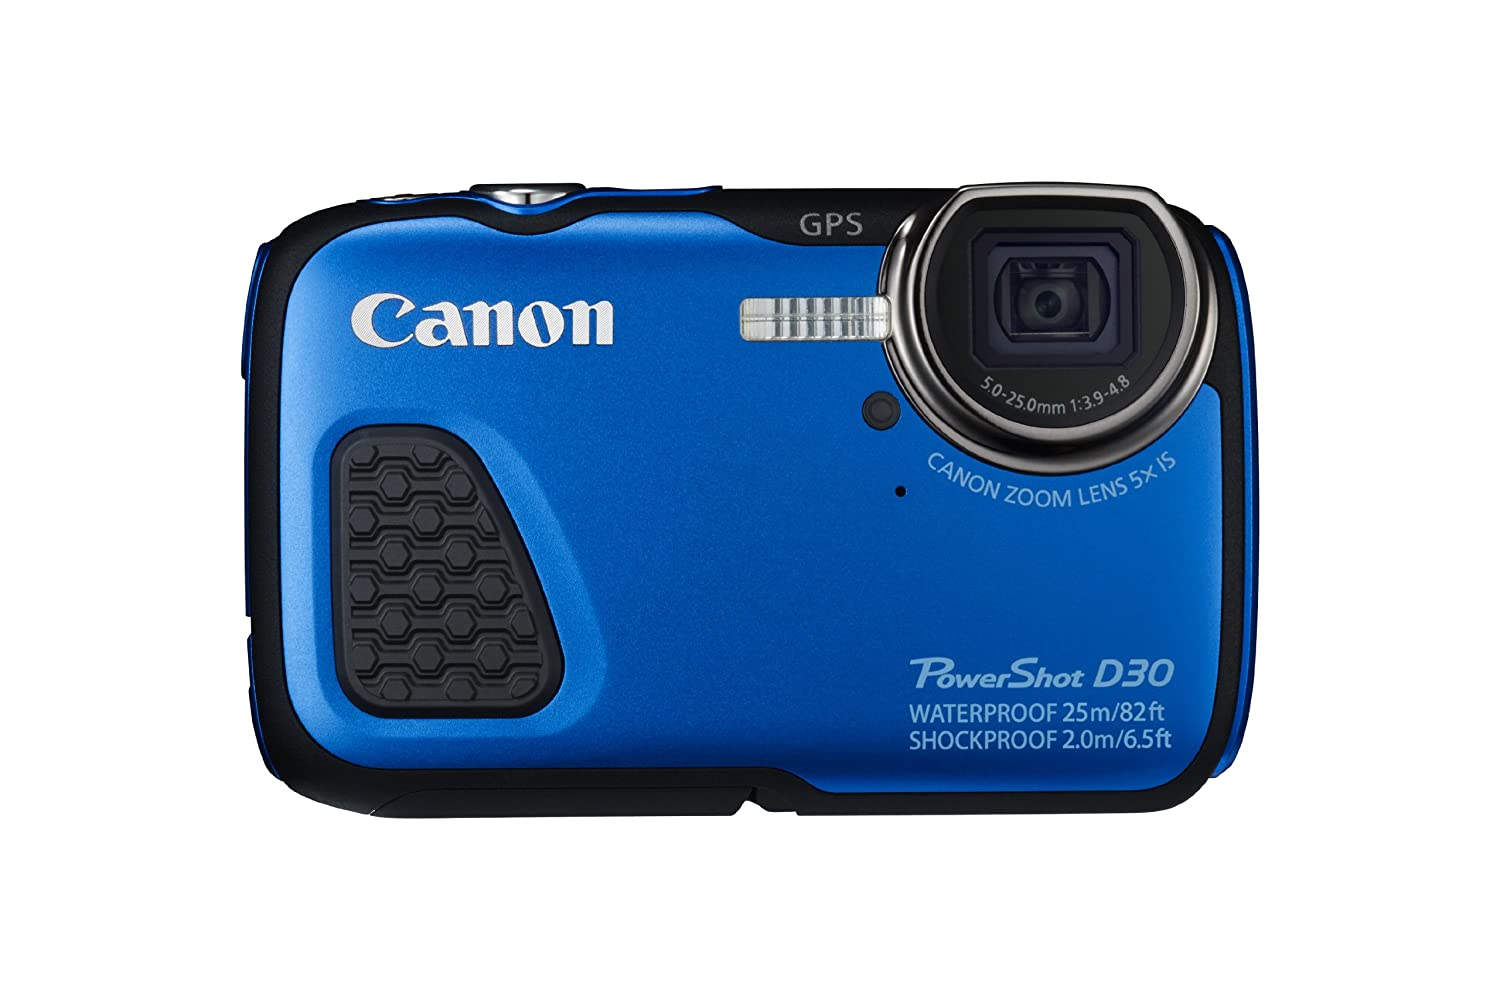 Amazon.com : Canon PowerShot D30 Waterproof Digital Camera, Blue ...